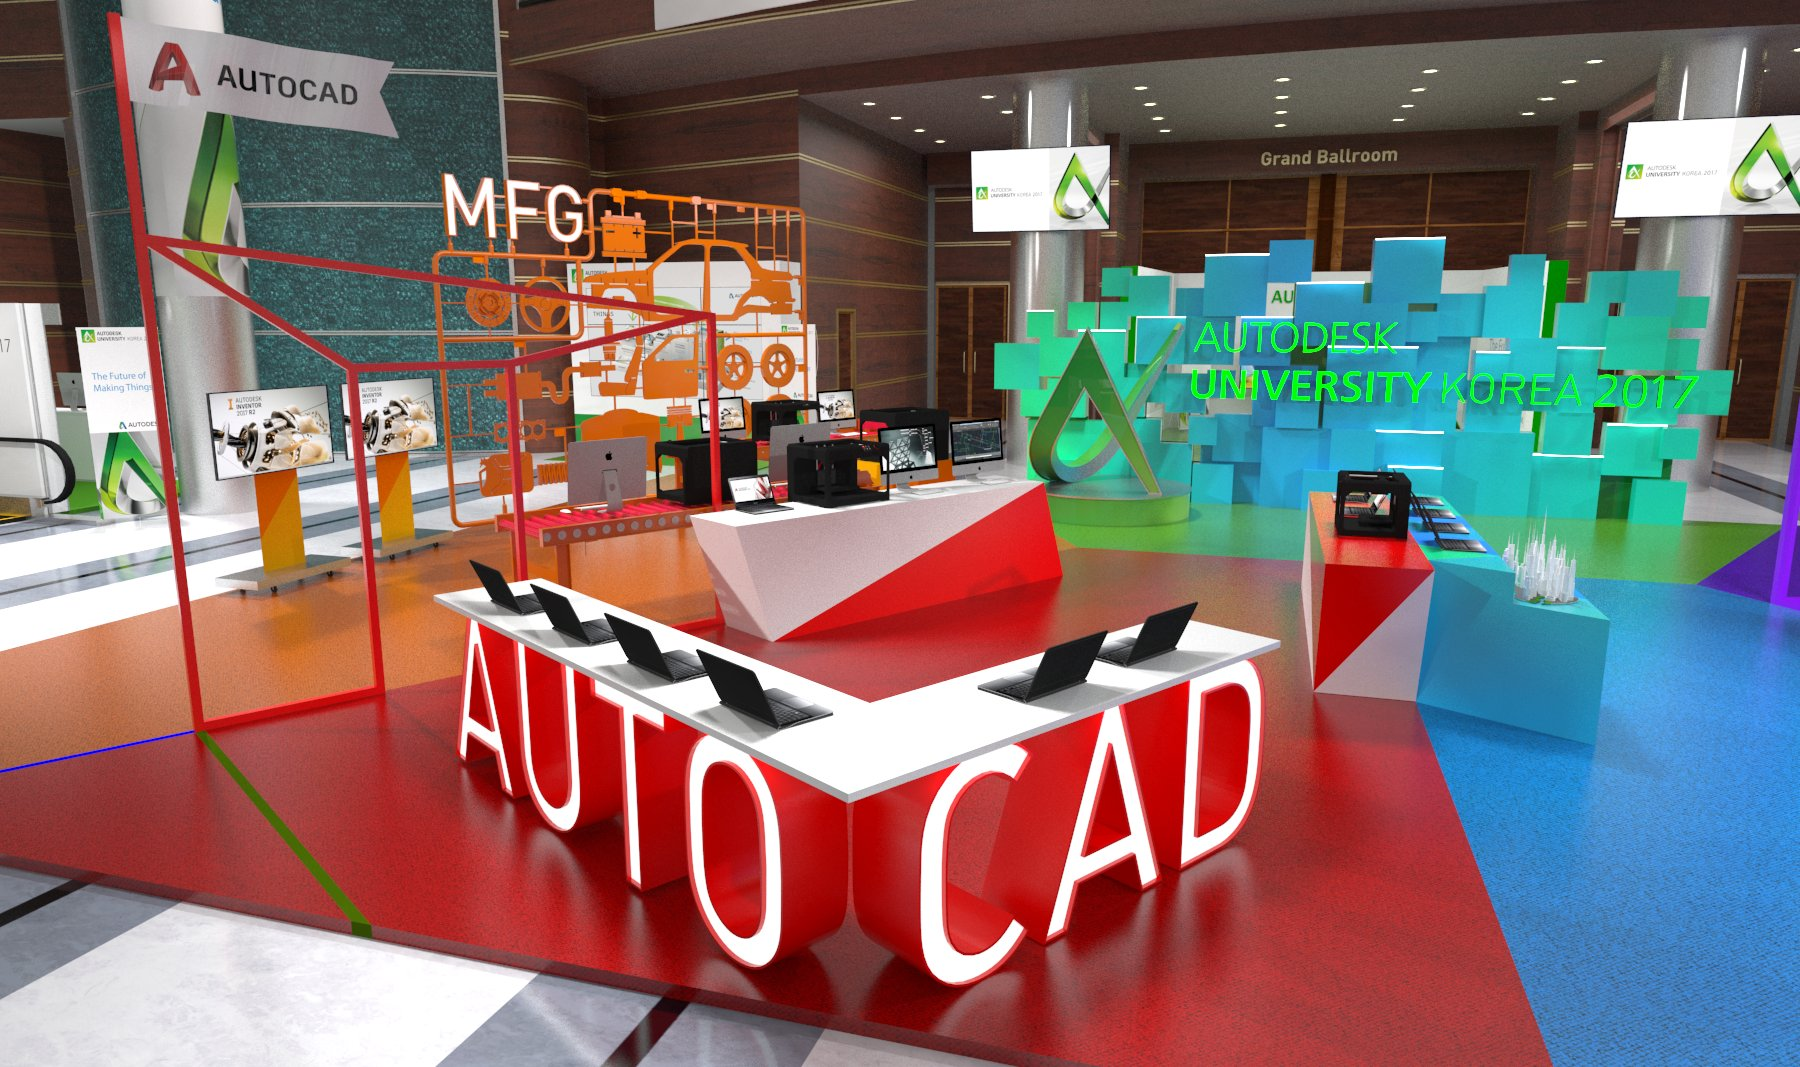 Autodesk University_EX _Rendering_27